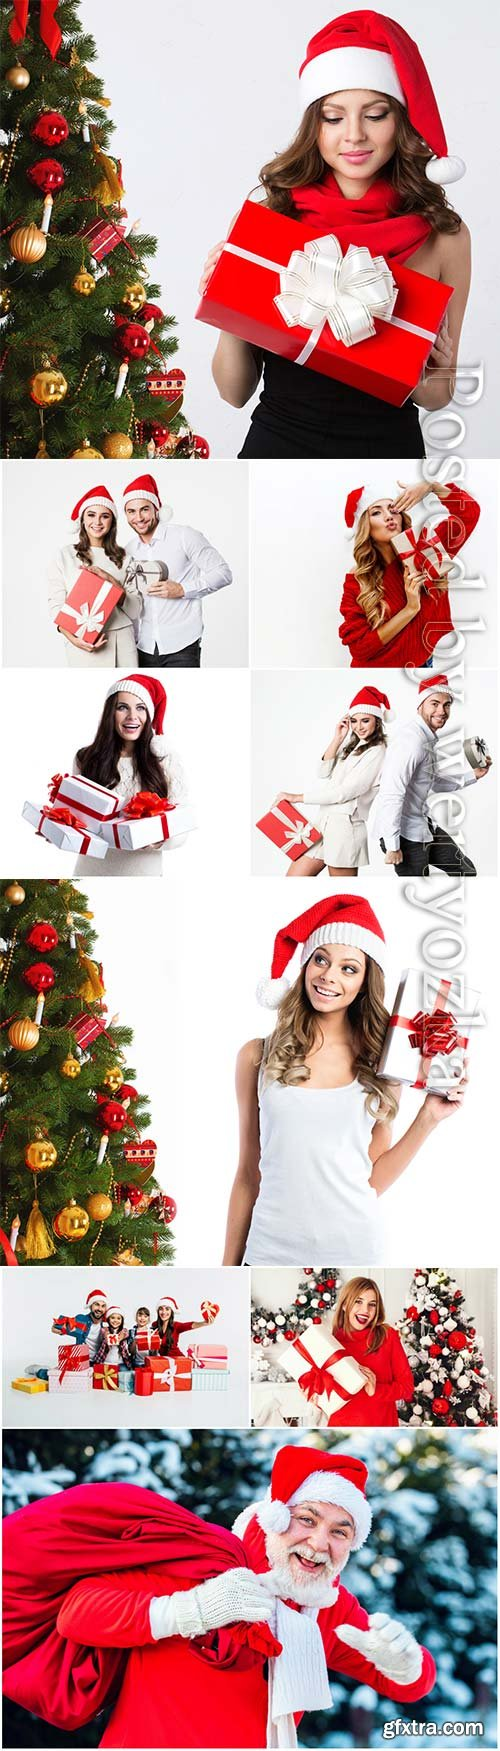 Christmas and New Year stock photo collection